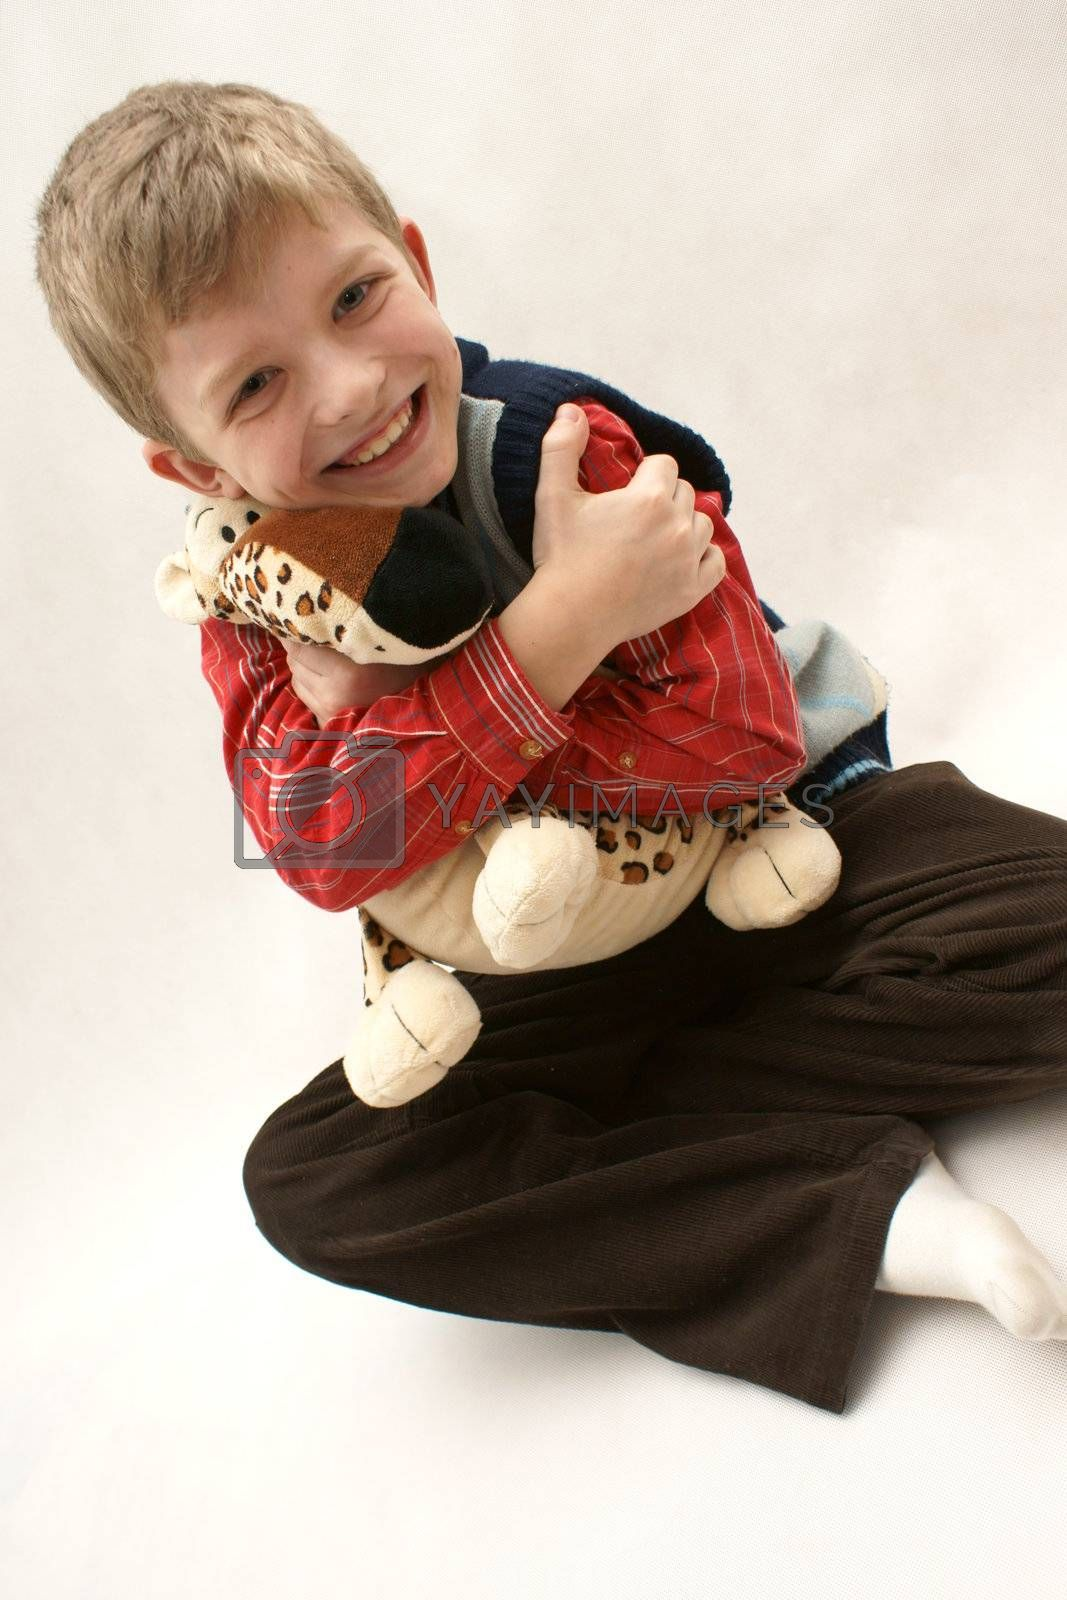 Young boy with toy plush